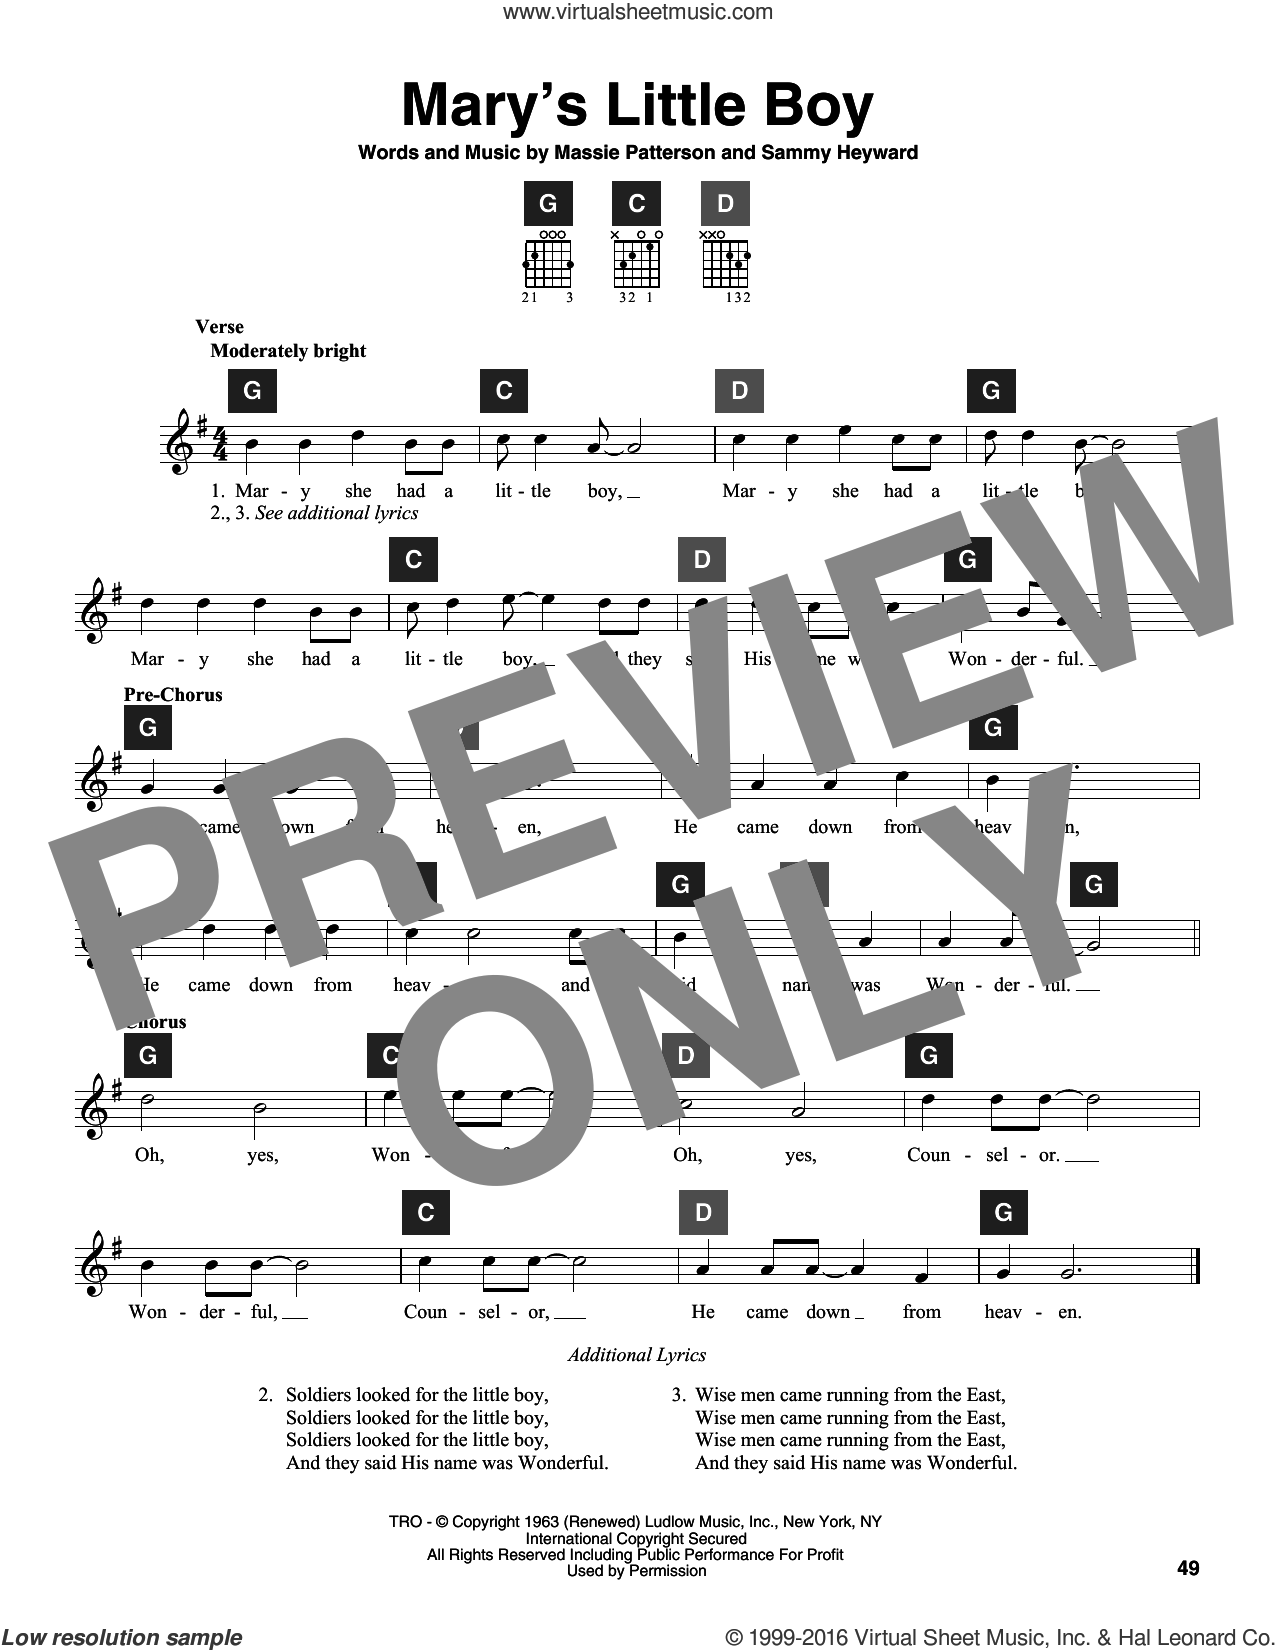 Mary's Little Boy sheet music for guitar solo (ChordBuddy system) by Massie Patterson